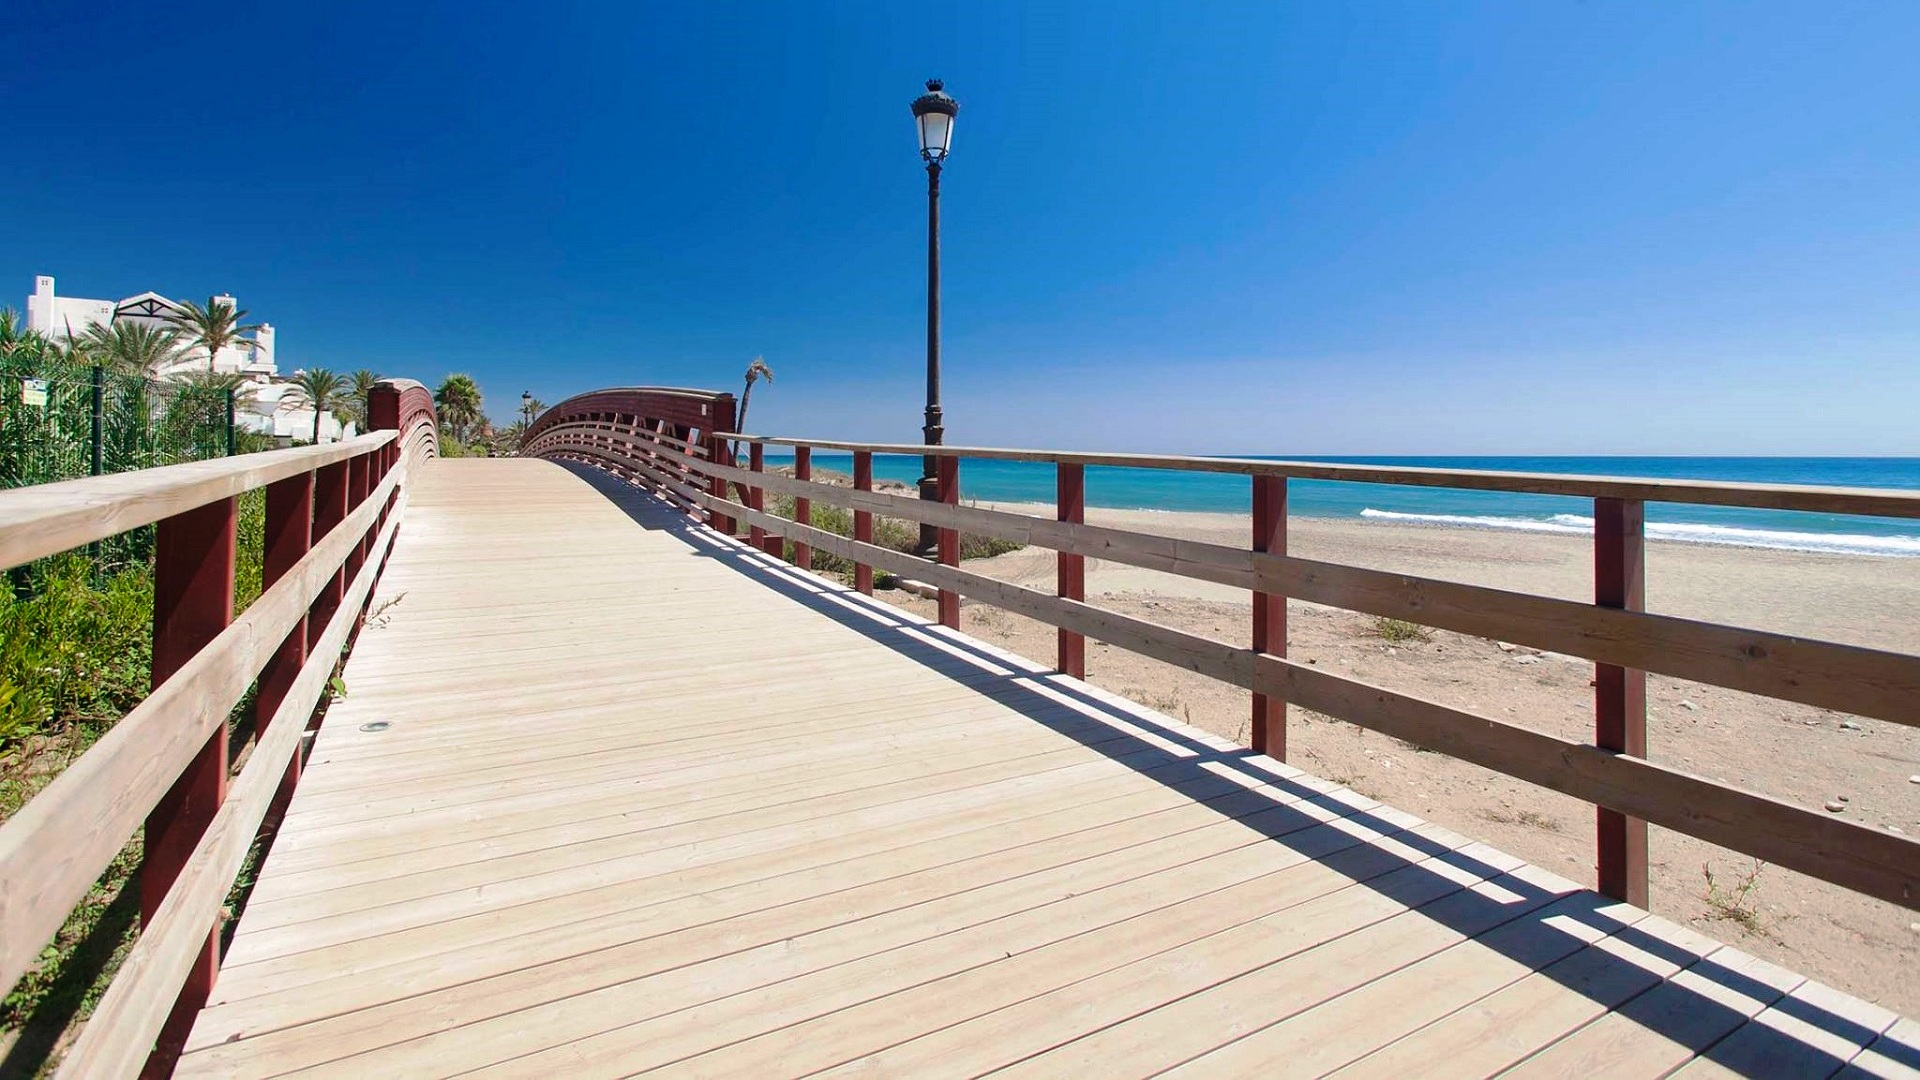 Why choose Marbella as a place to live - Marbella Unique Properties - Please do not hesitate to contact us